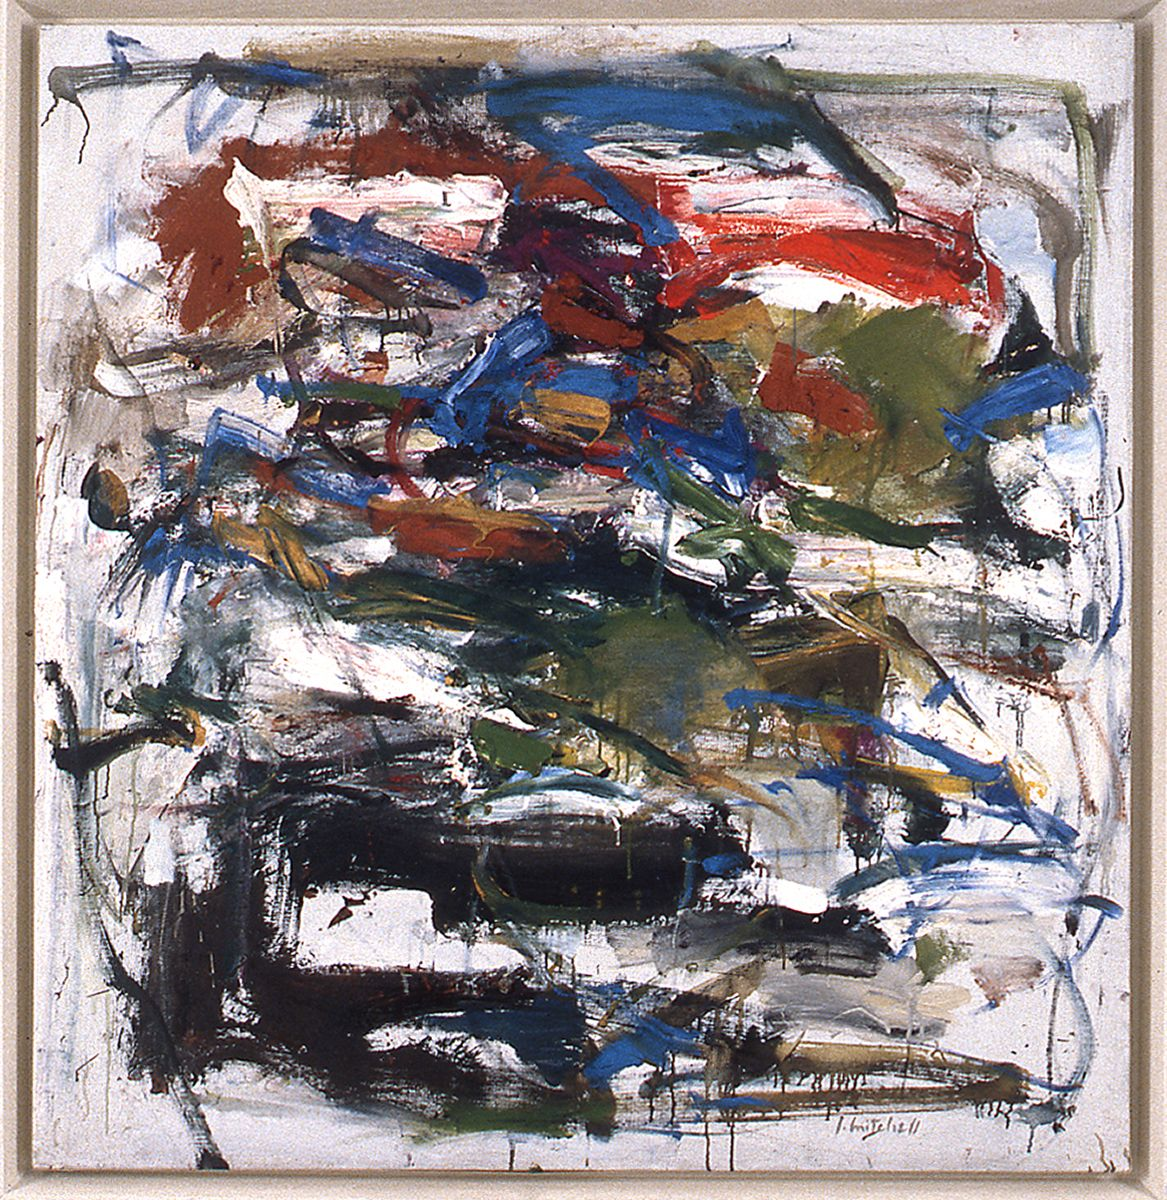 Joan Mitchell, Untitled, 1958, oil on canvas, 77 3/4 x 68 inches